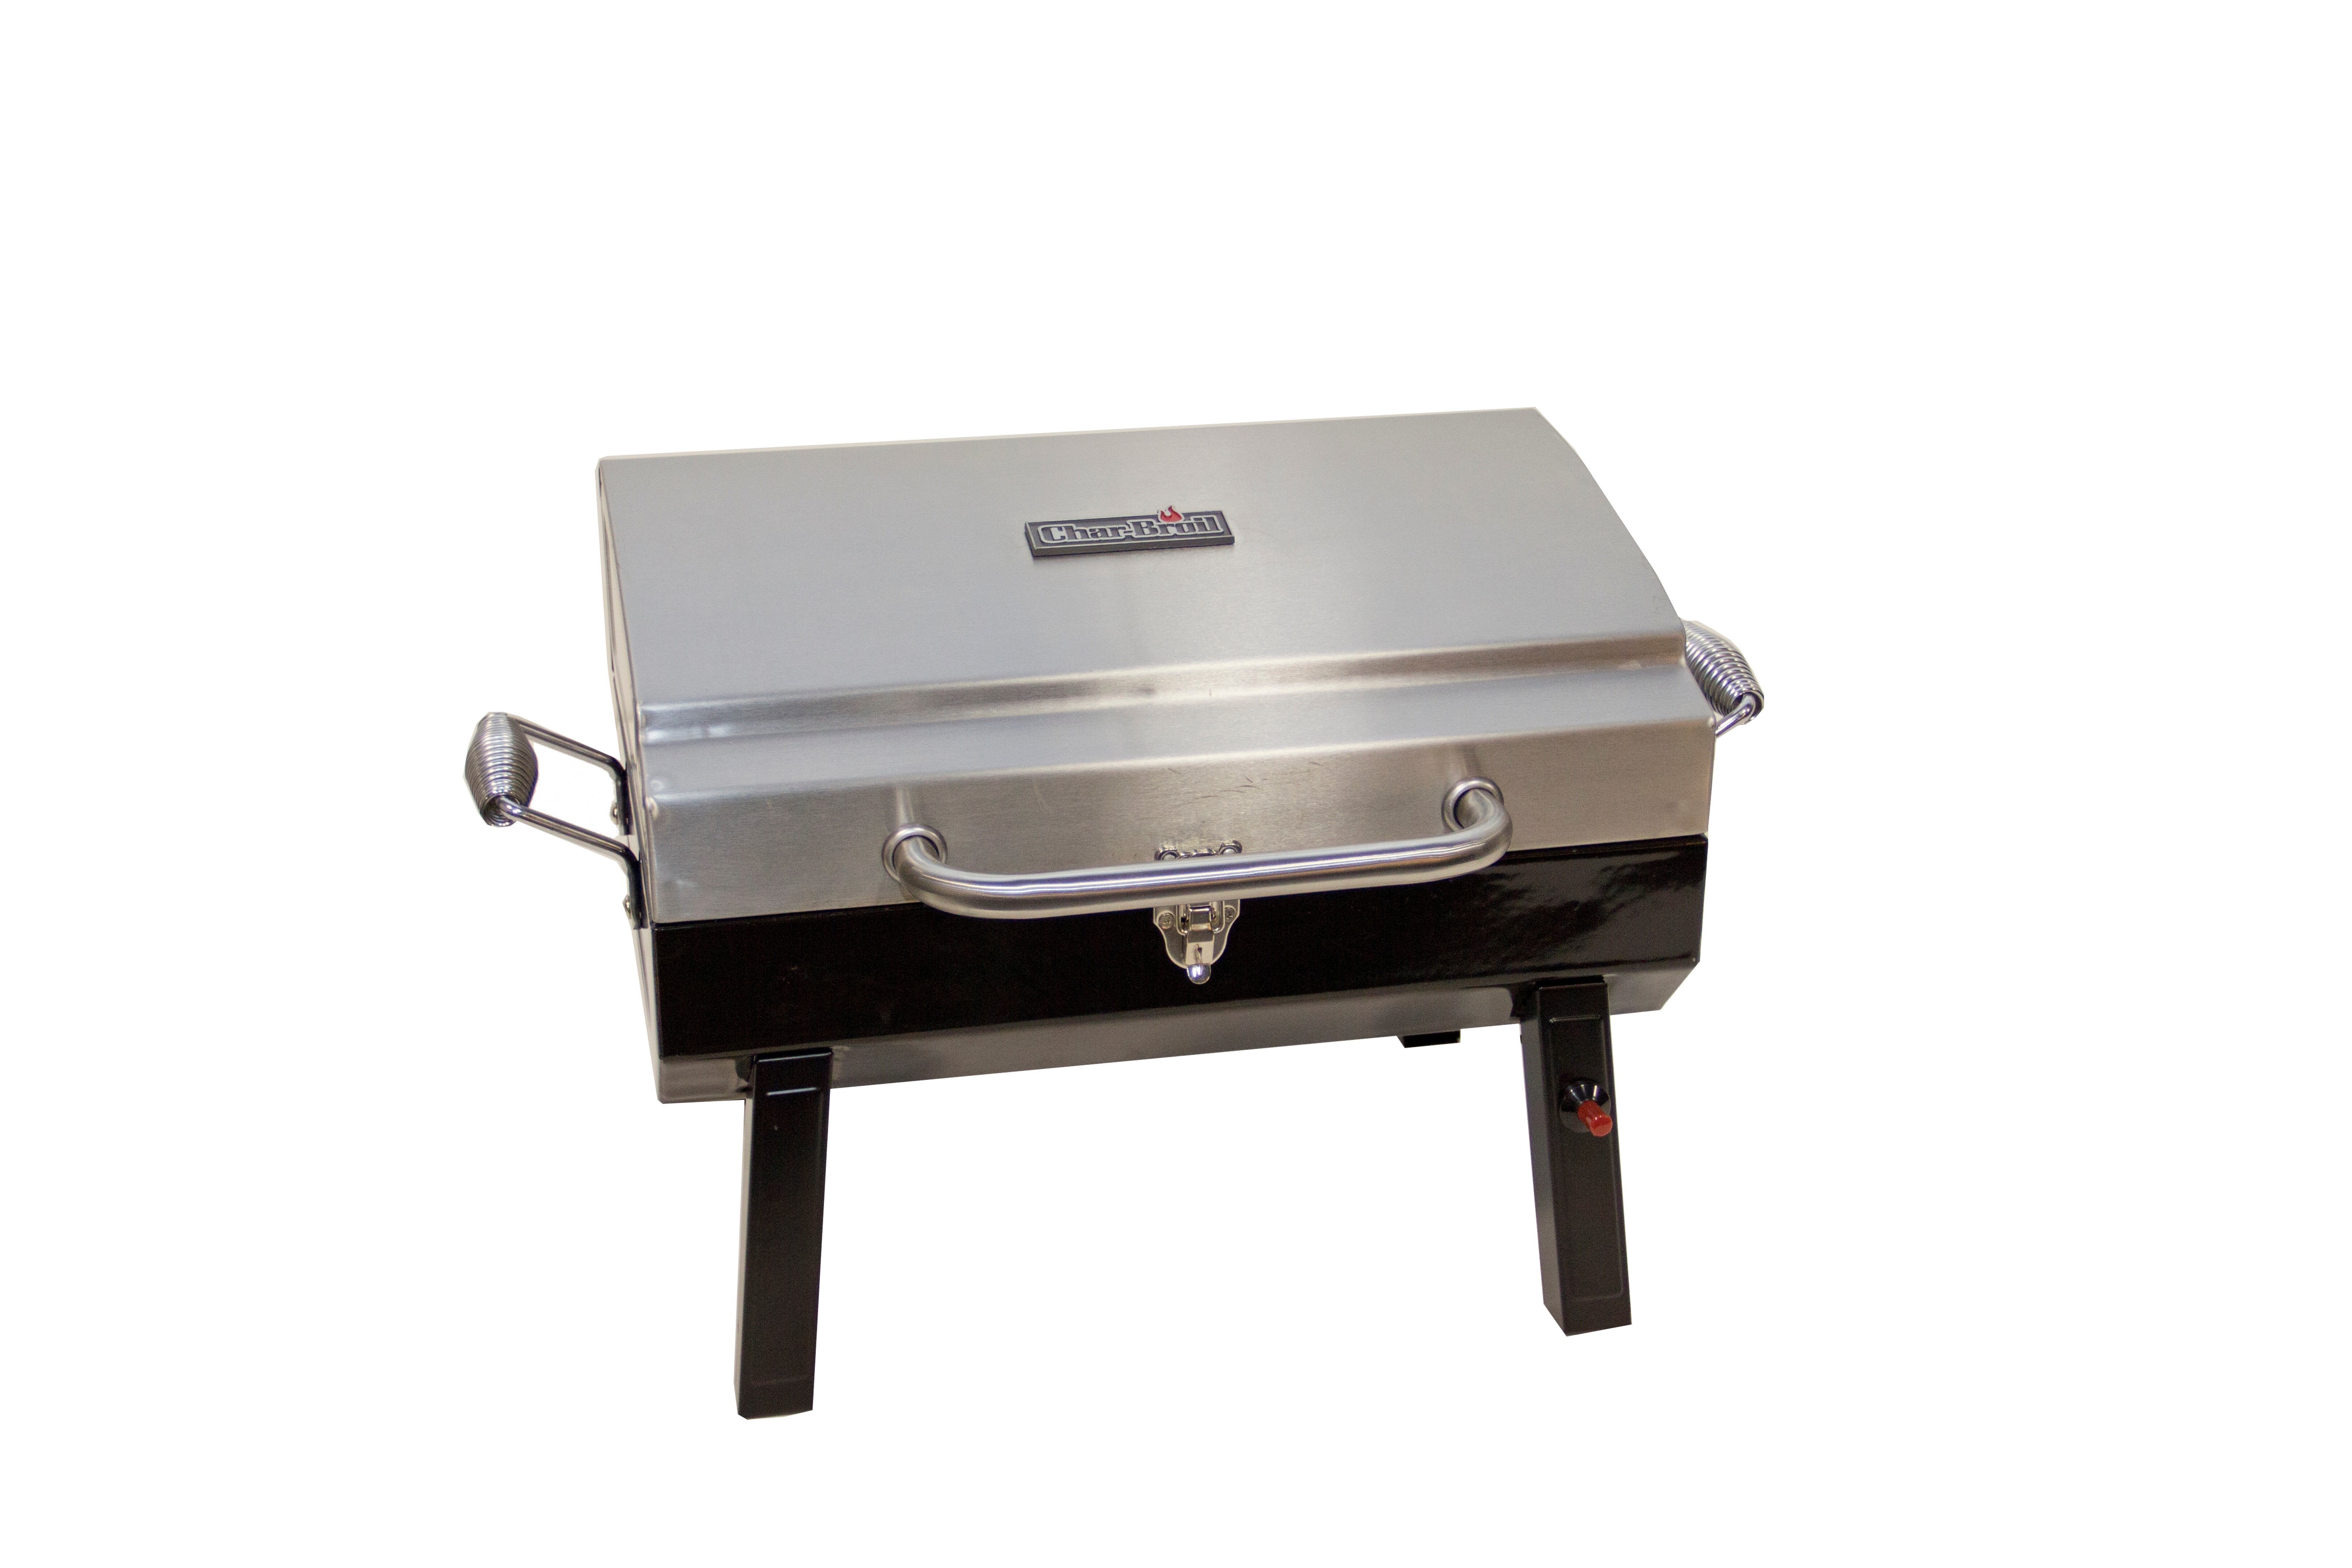 CharBroil Deluxe 1 Burner Portable Propane Gas Grill U0026 Reviews | Wayfair